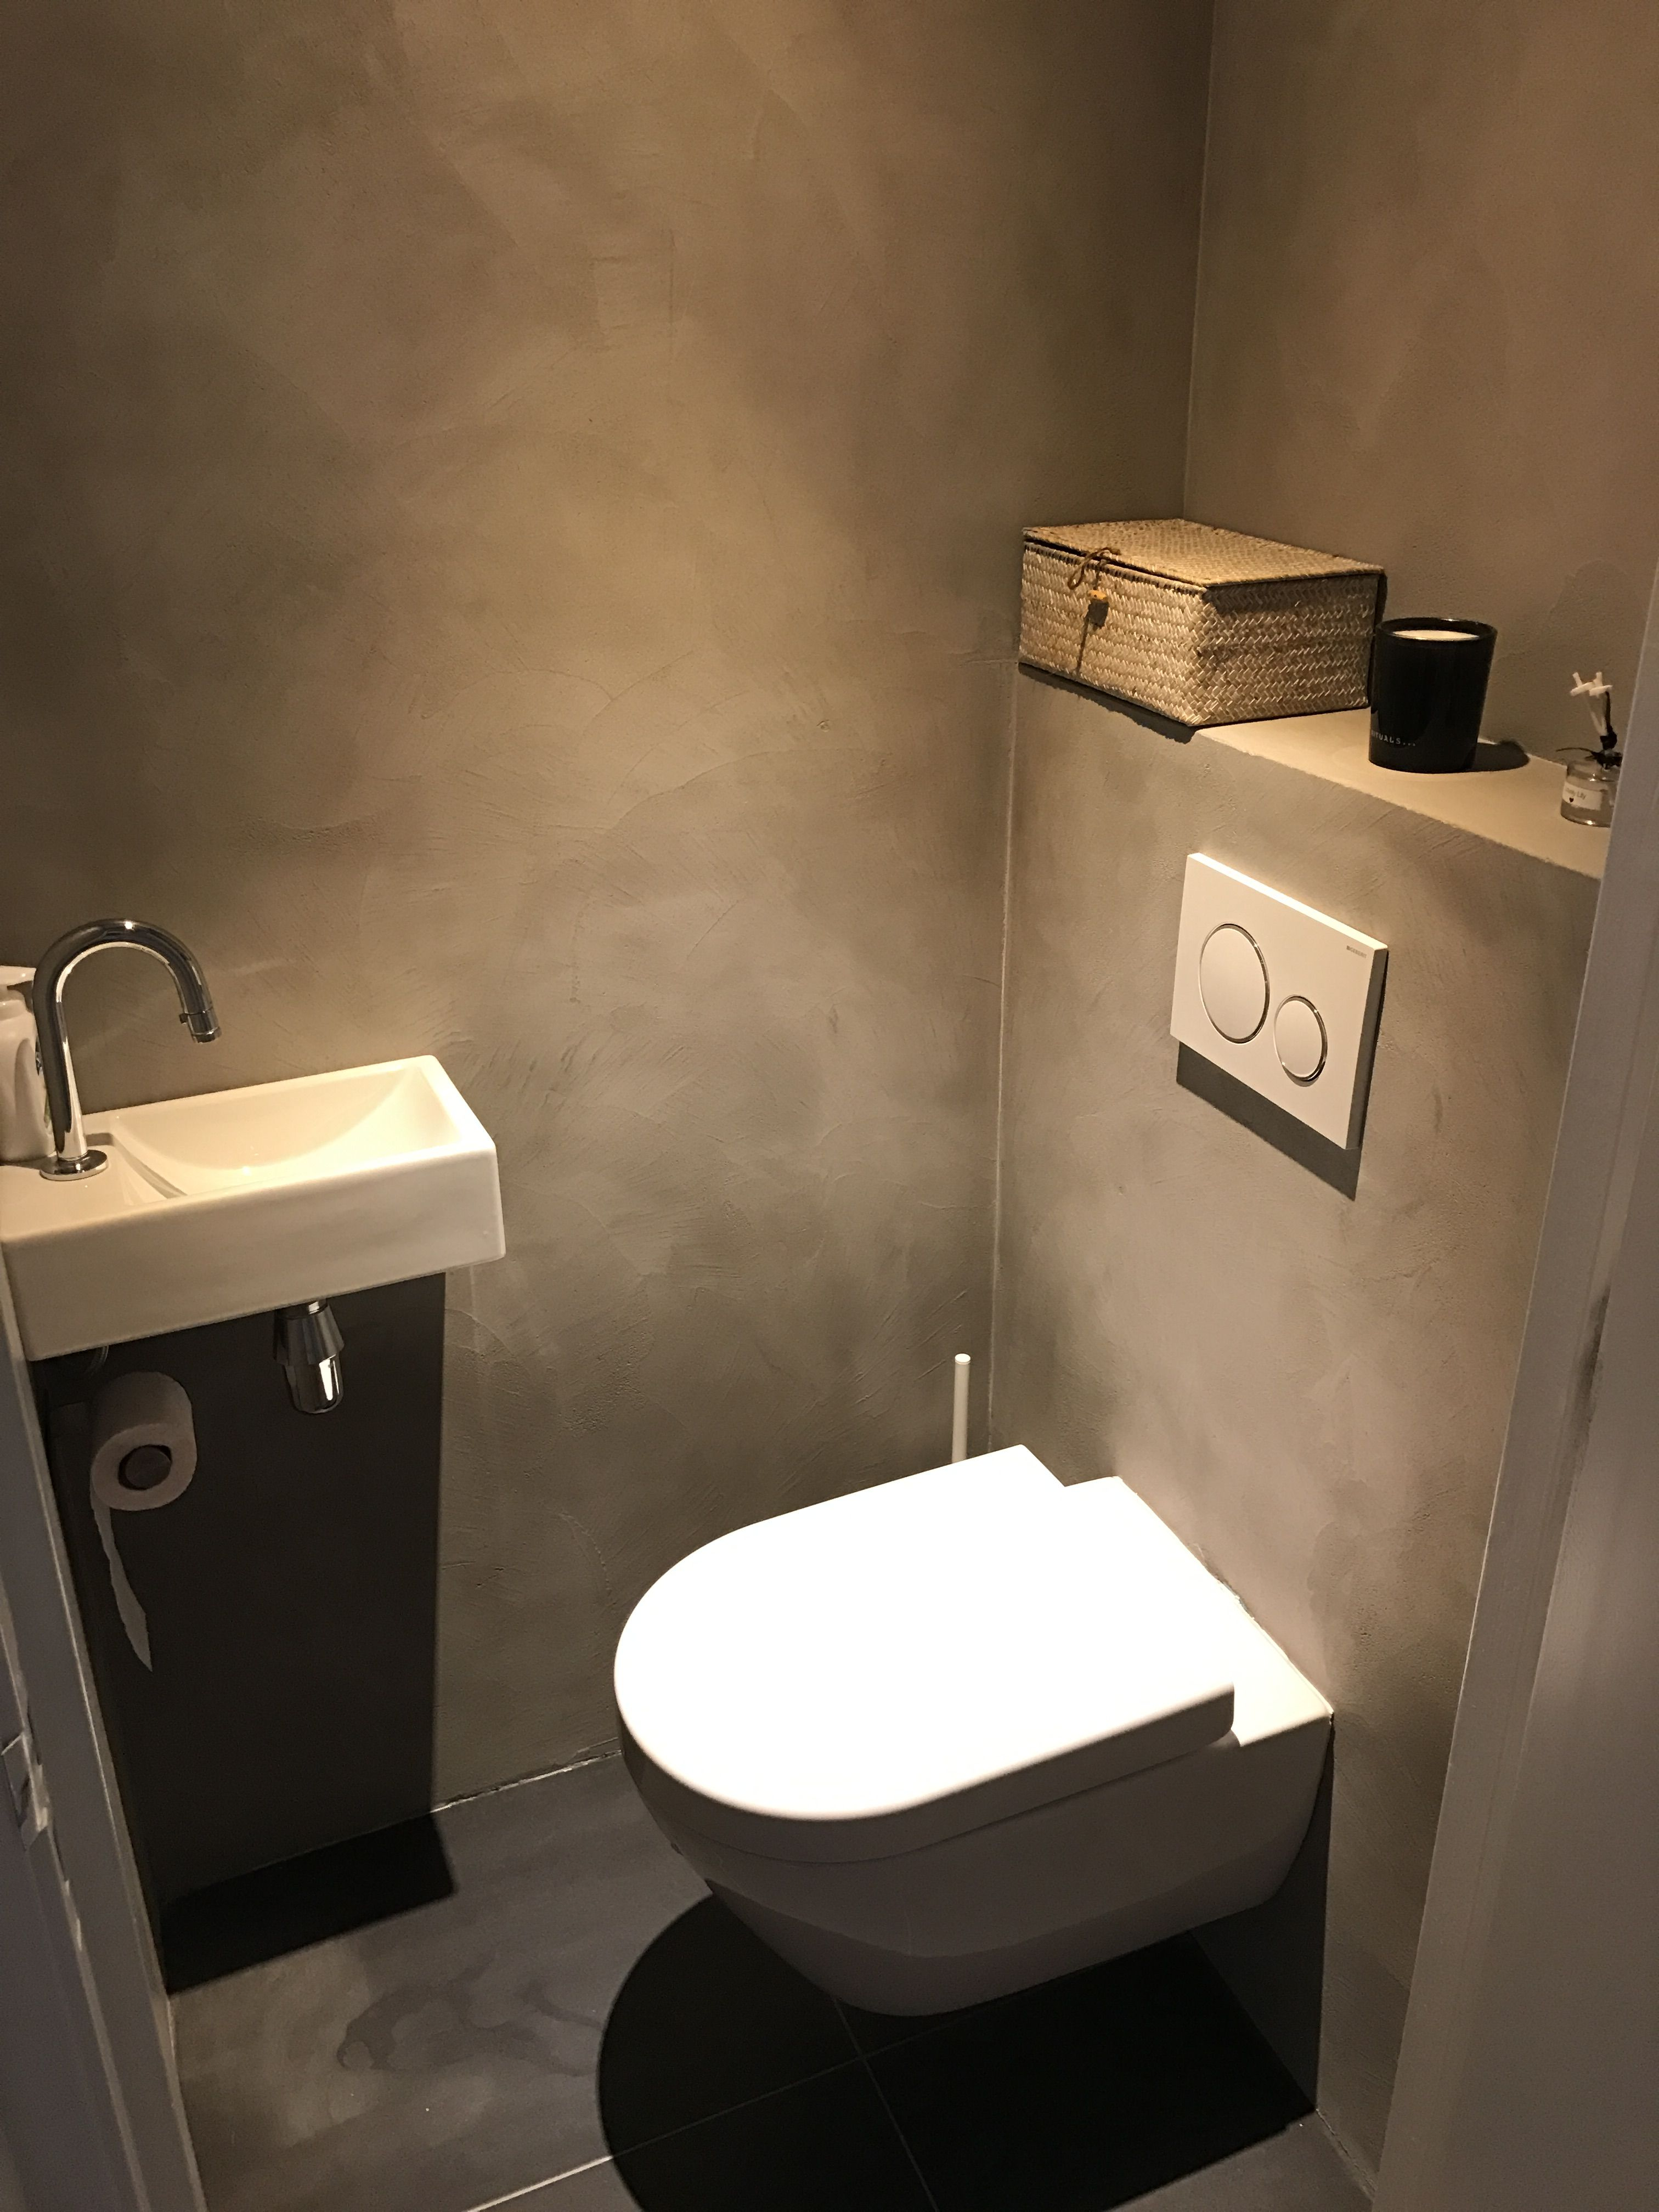 Beton Cire WC | Badkamer | Pinterest | Toilet, Powder room and Bath